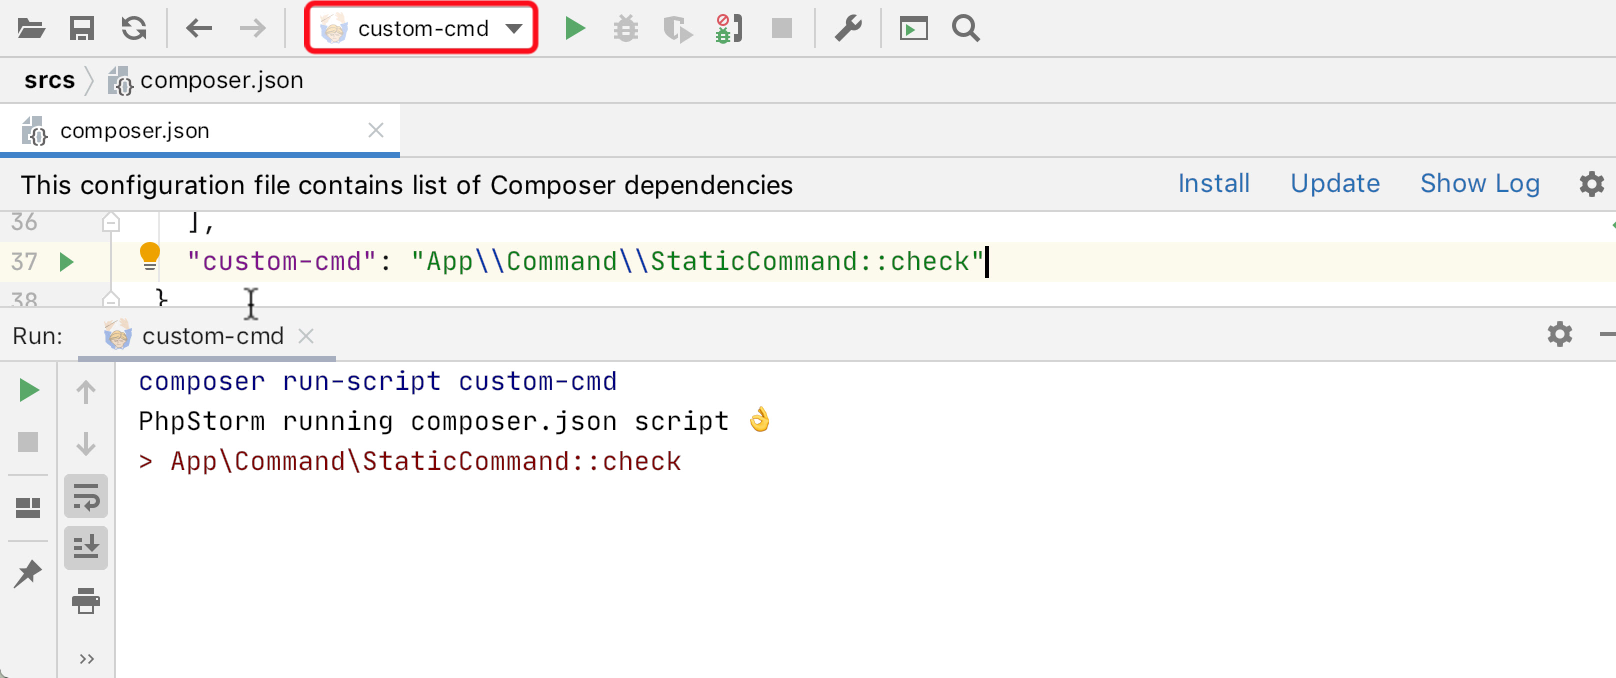 composer-json_scripts_run-config@2x